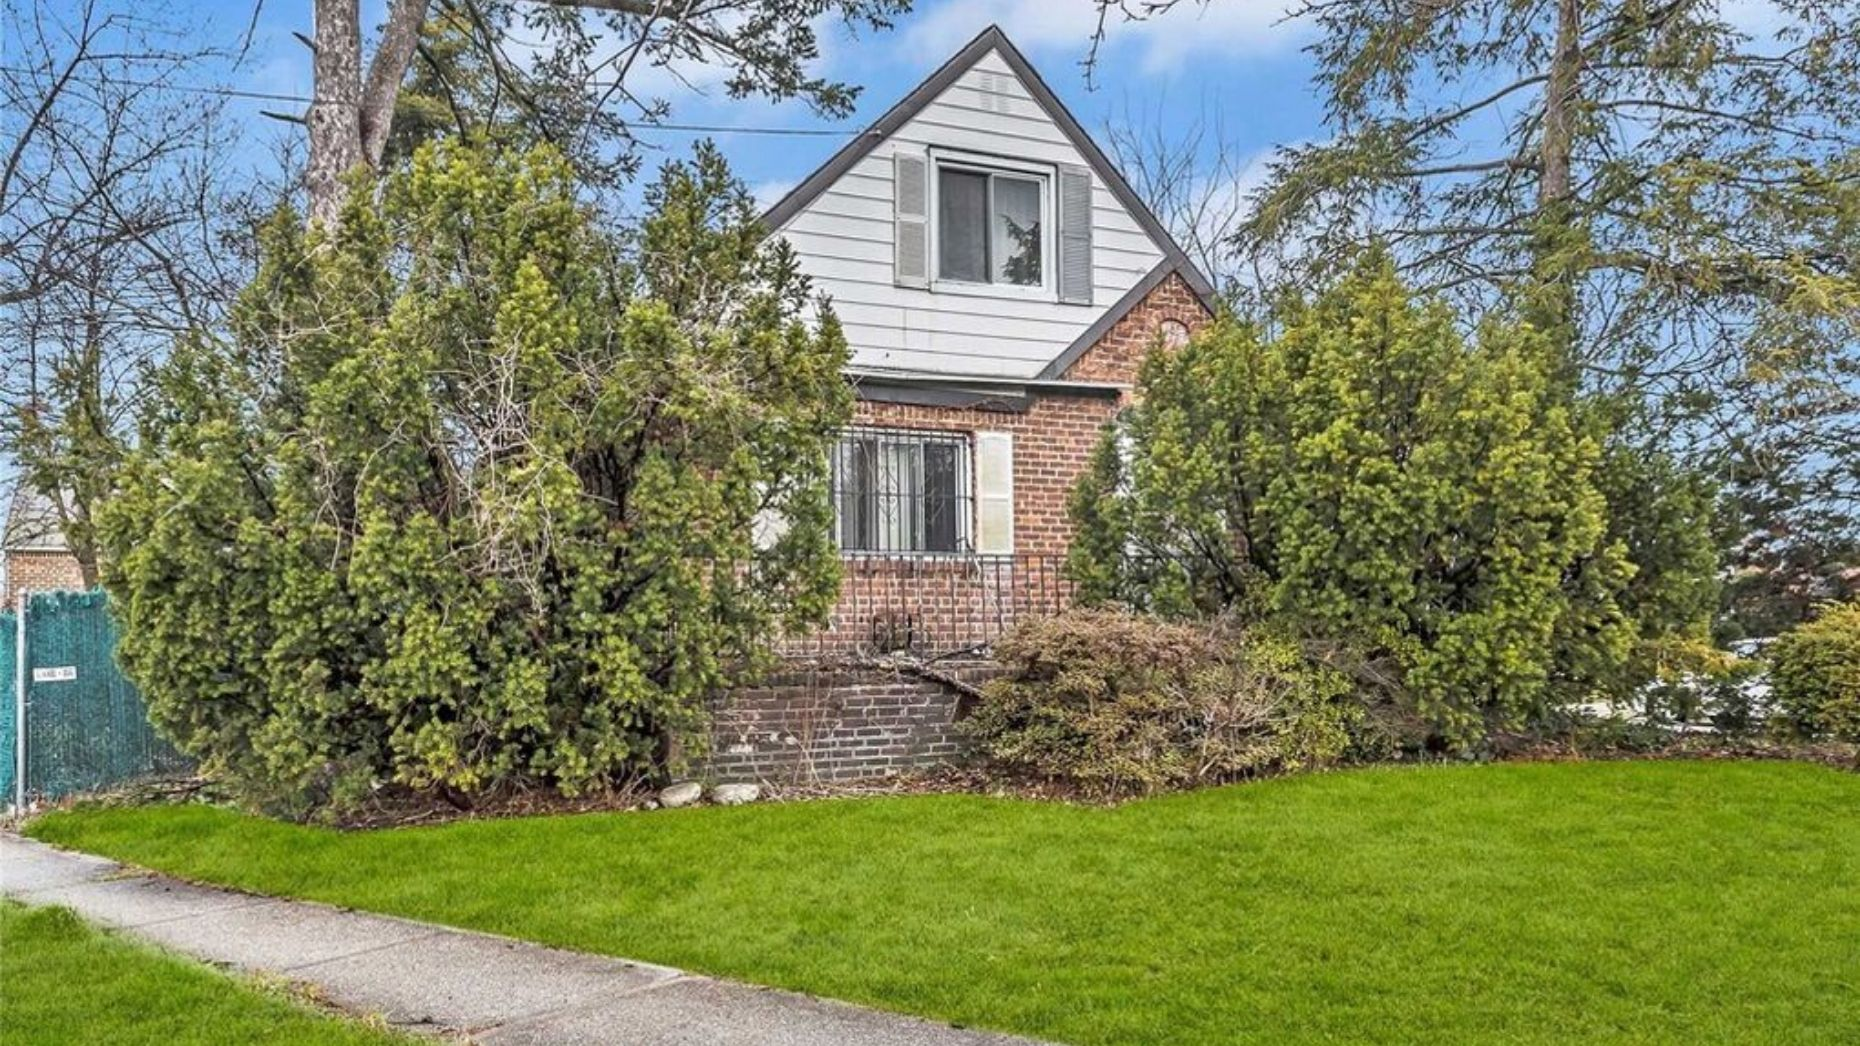 Nightmare Queens home listed for $829K is 'unlivable'